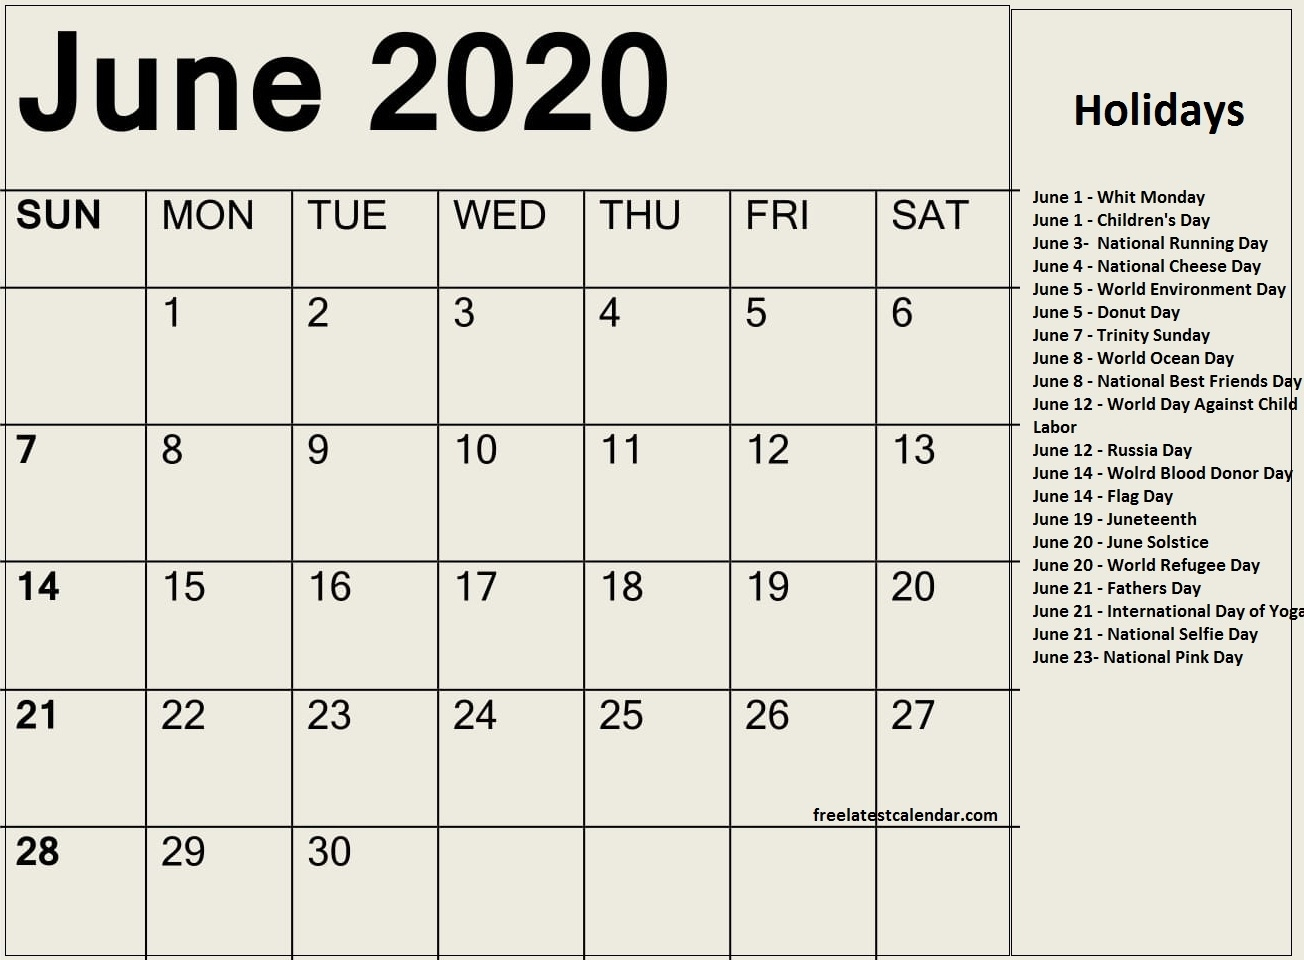 June 2020 Calendar With Holidays And Special Days - Free within Special Days On Calender For 2020